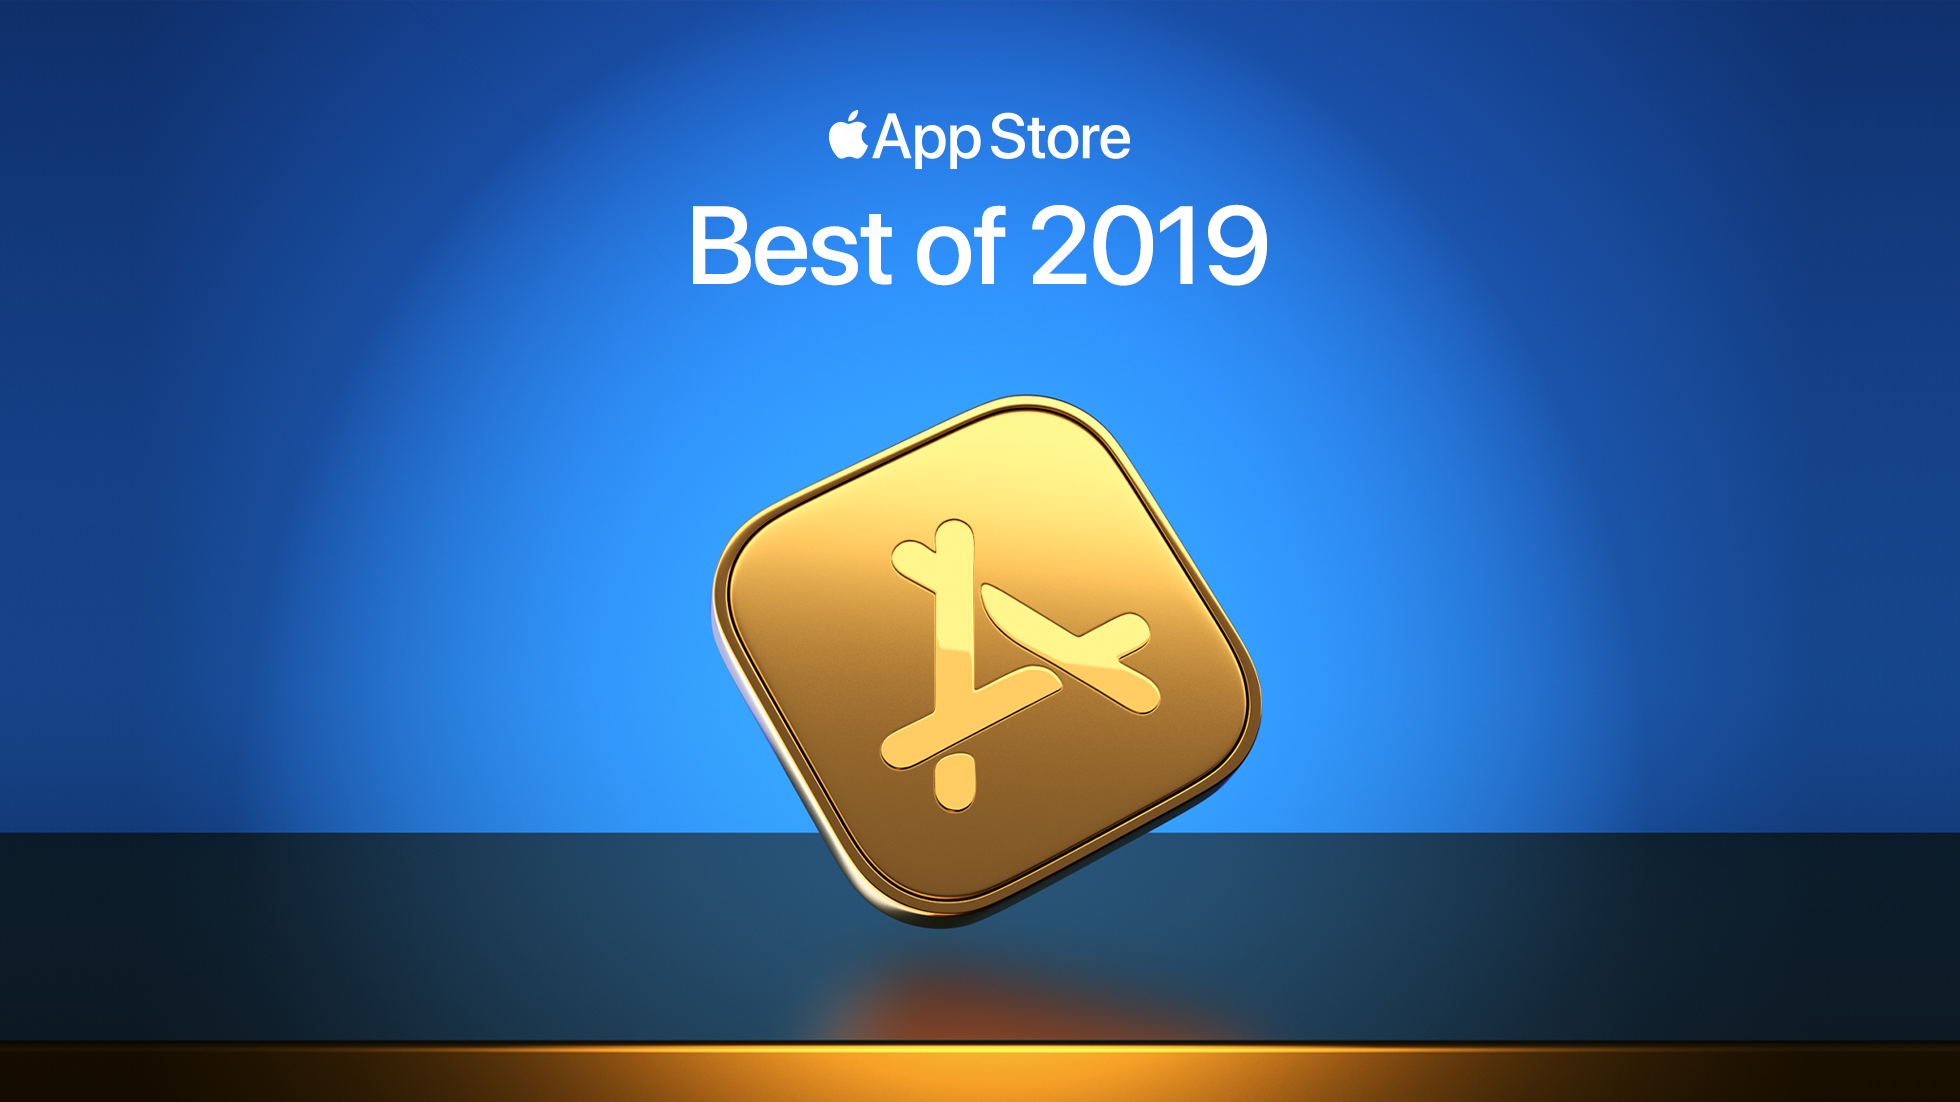 Apple's 'Best of 2019' apps and games revealed